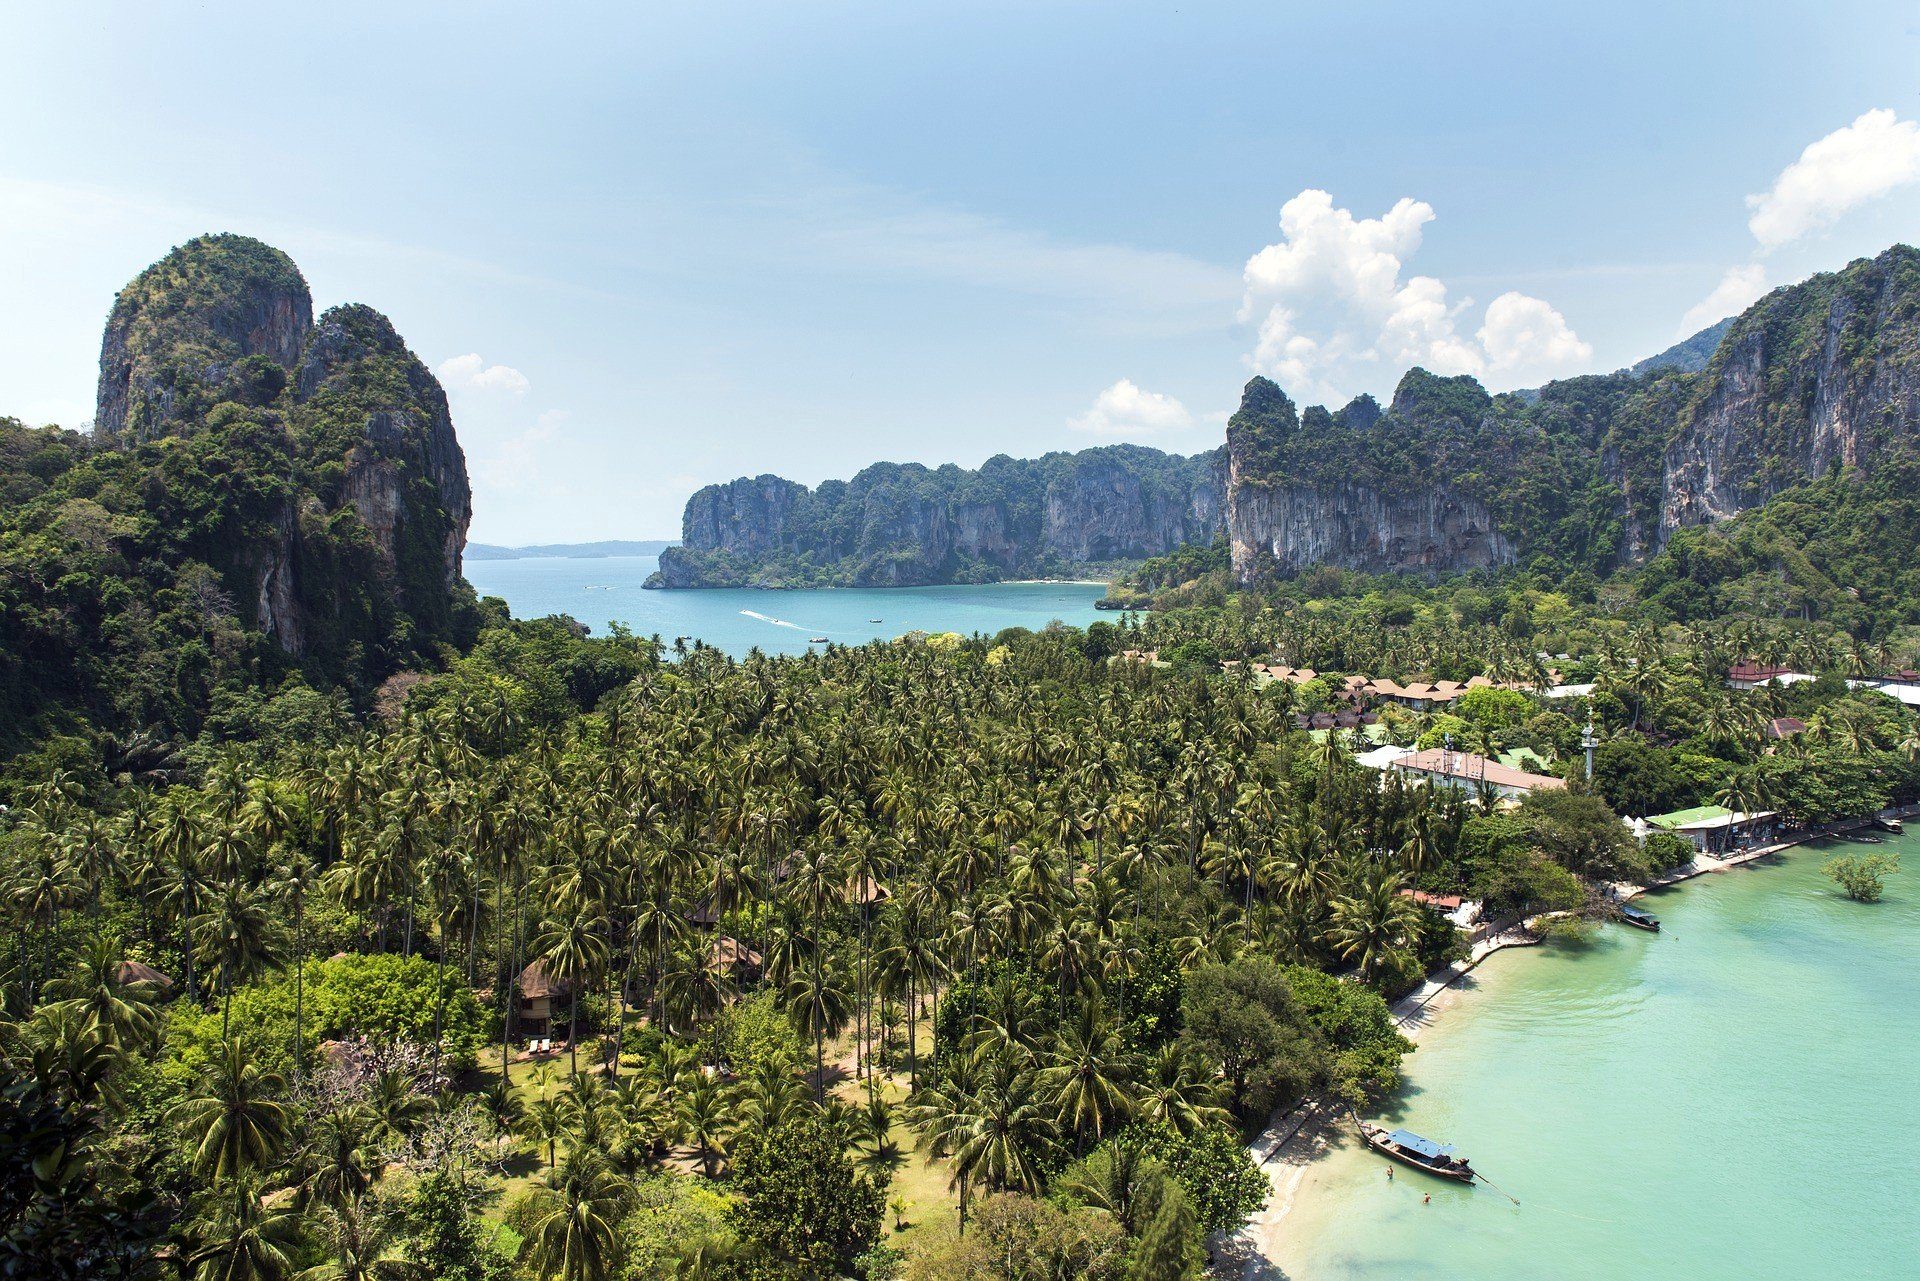 Railay Bay in Krabi